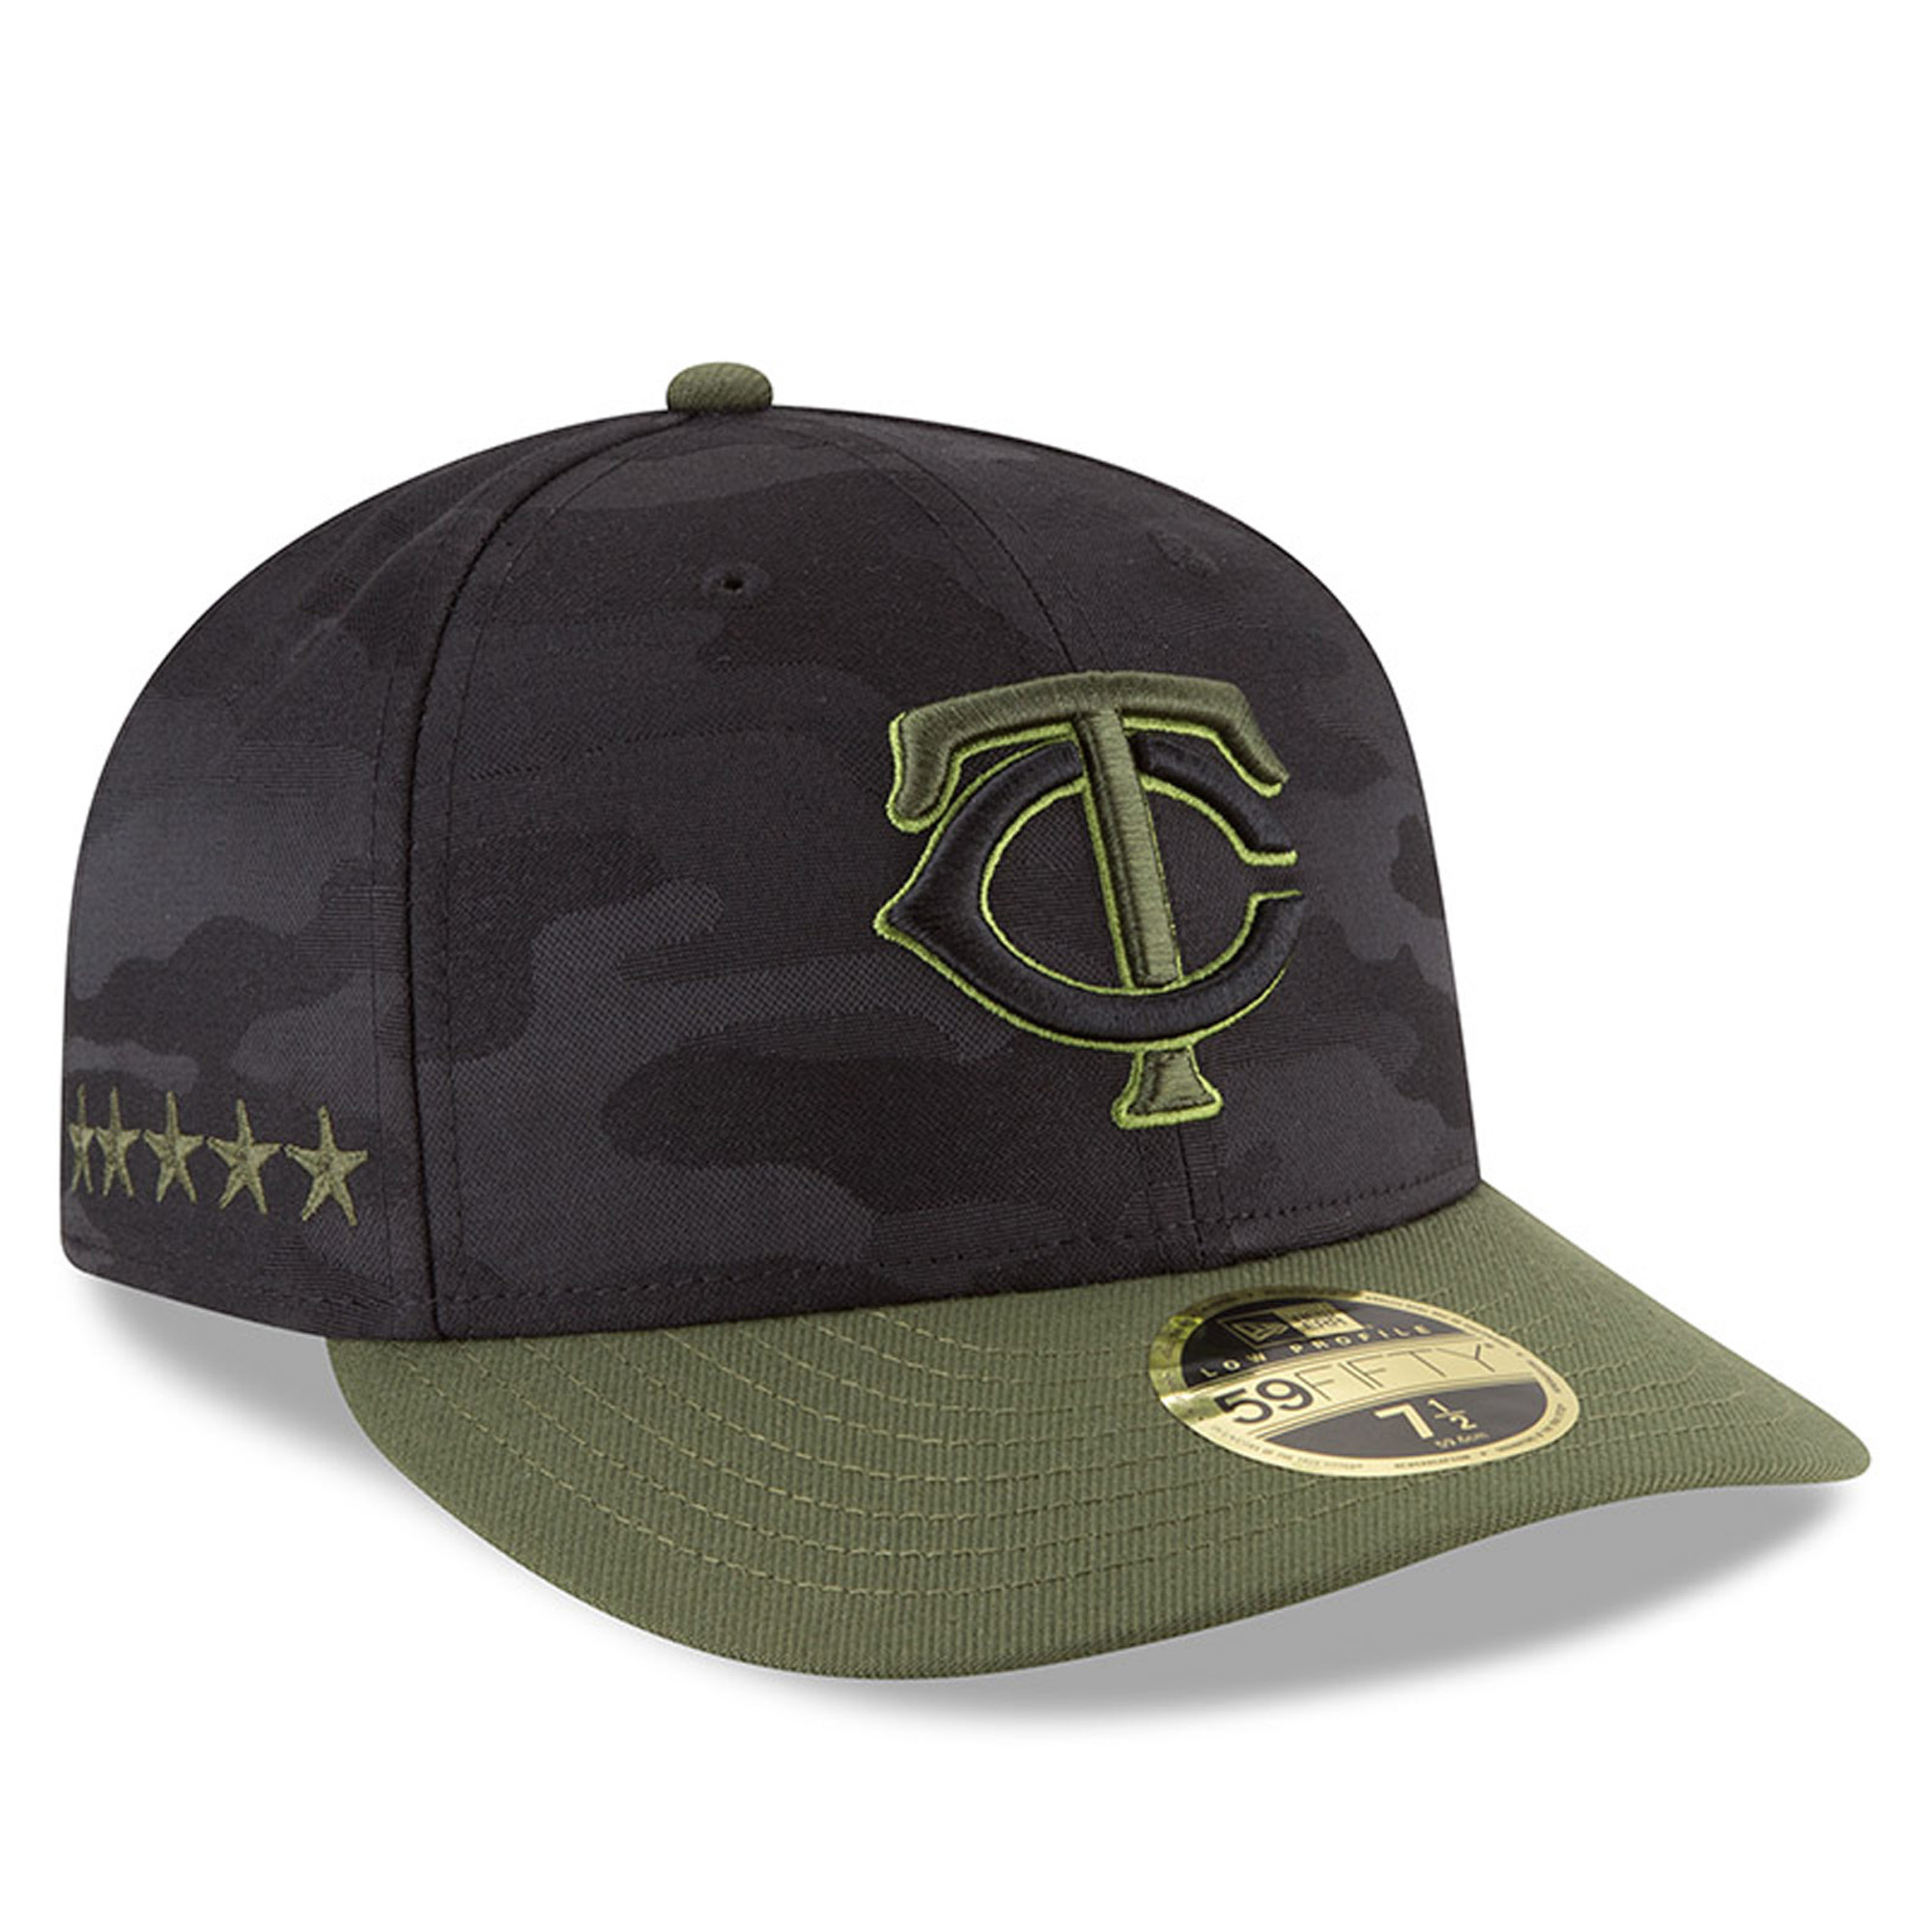 Minnesota Twins New Era 2018 Memorial Day On-Field Low Profile 59FIFTY Fitted Hat - Black